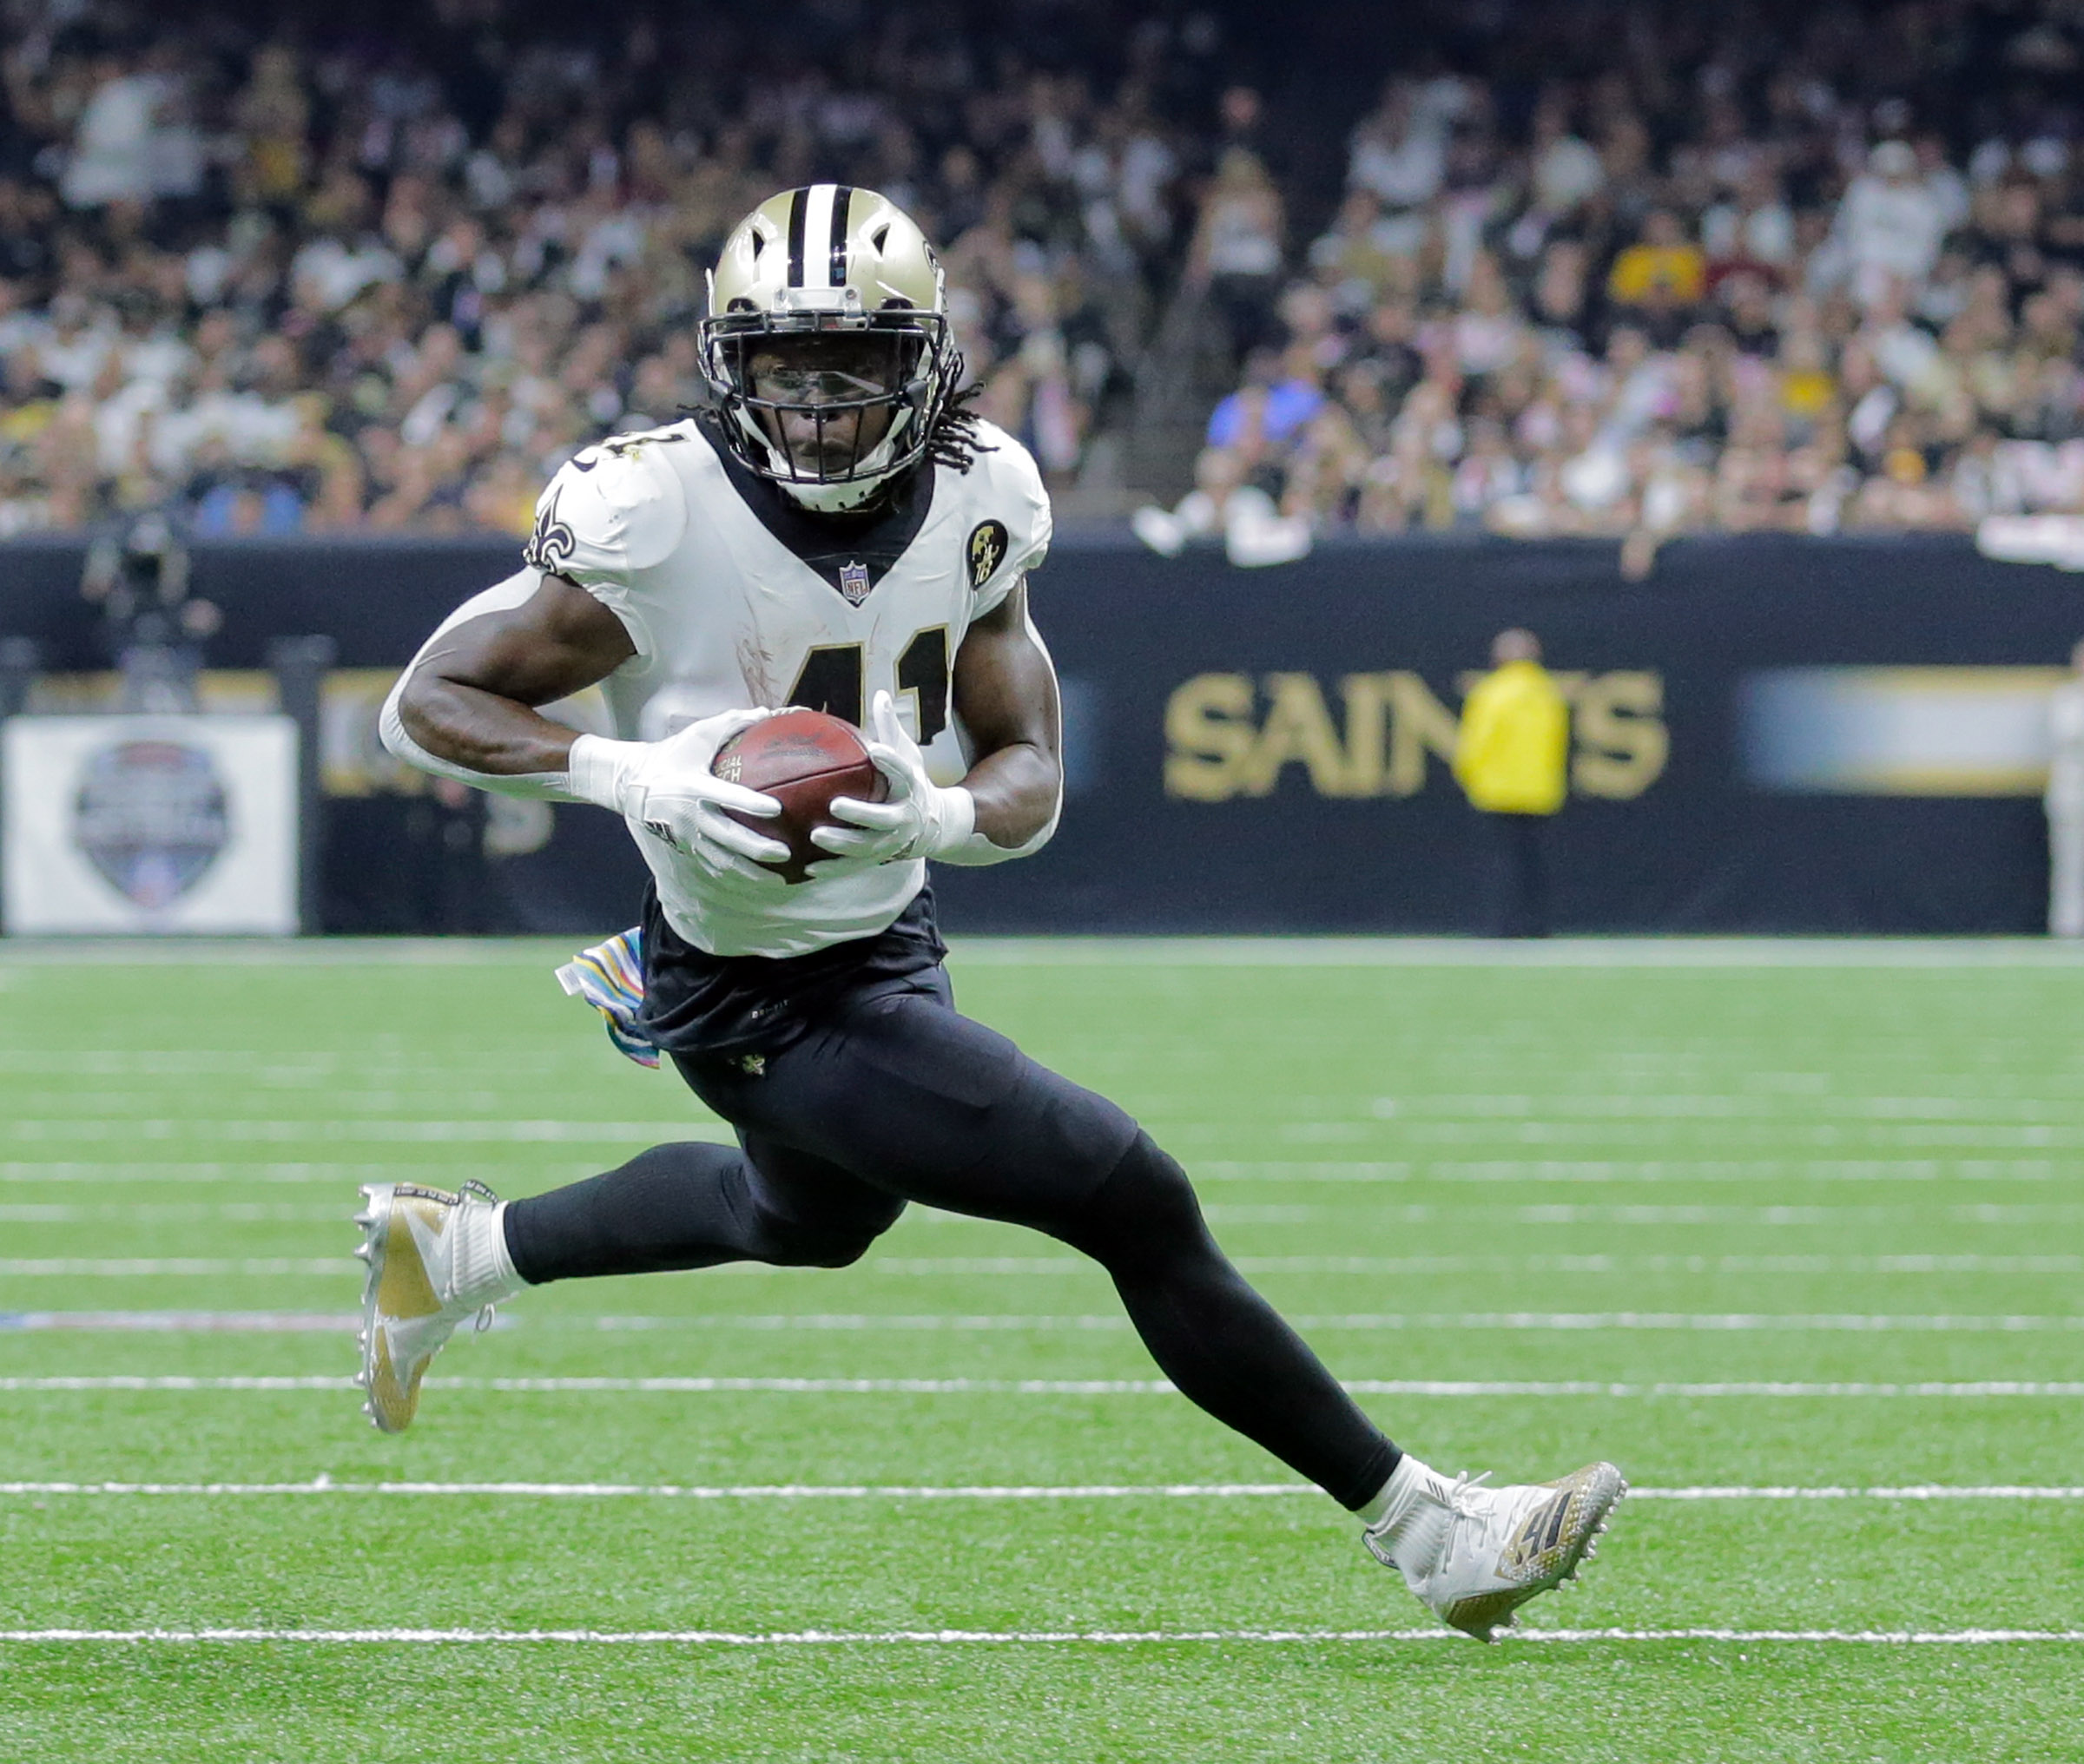 New Orleans Saints running back Alvin Kamara finds running room against Washington at the Mercedes-Benz Superdome in New Orleans on Monday, Oct. 8, 2018.